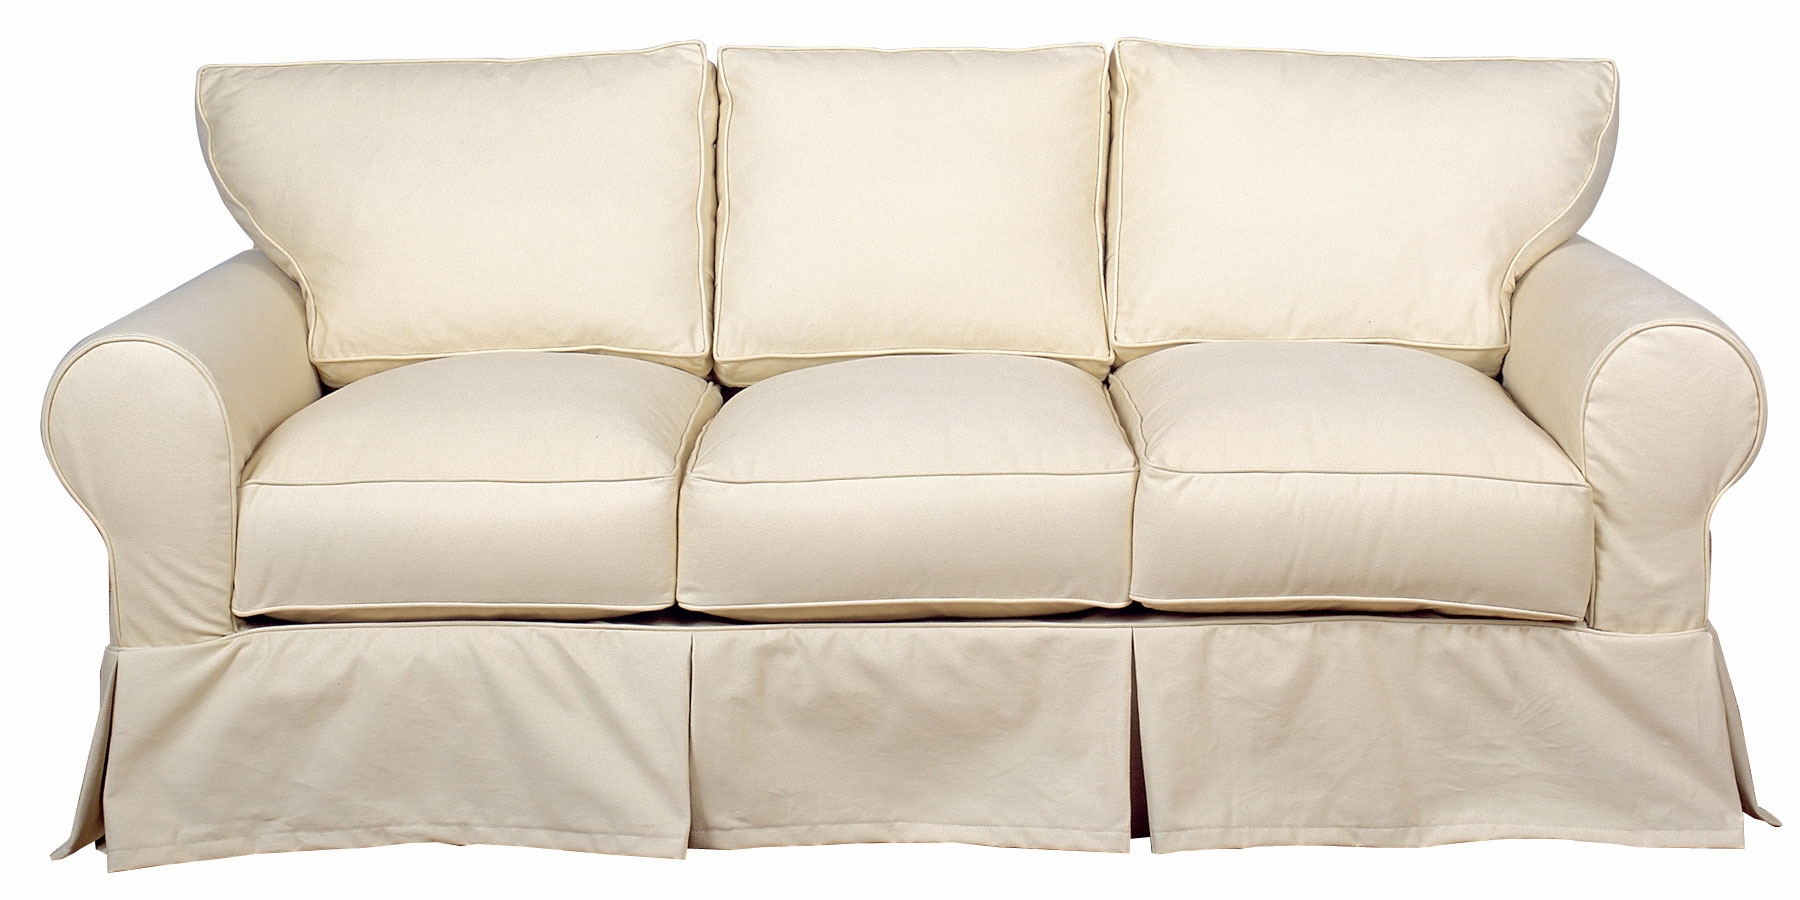 3 Piece T Cushion Sofa Slipcover | T Cushion Sofa Slipcover | Slipcovers for T Cushion Sofas